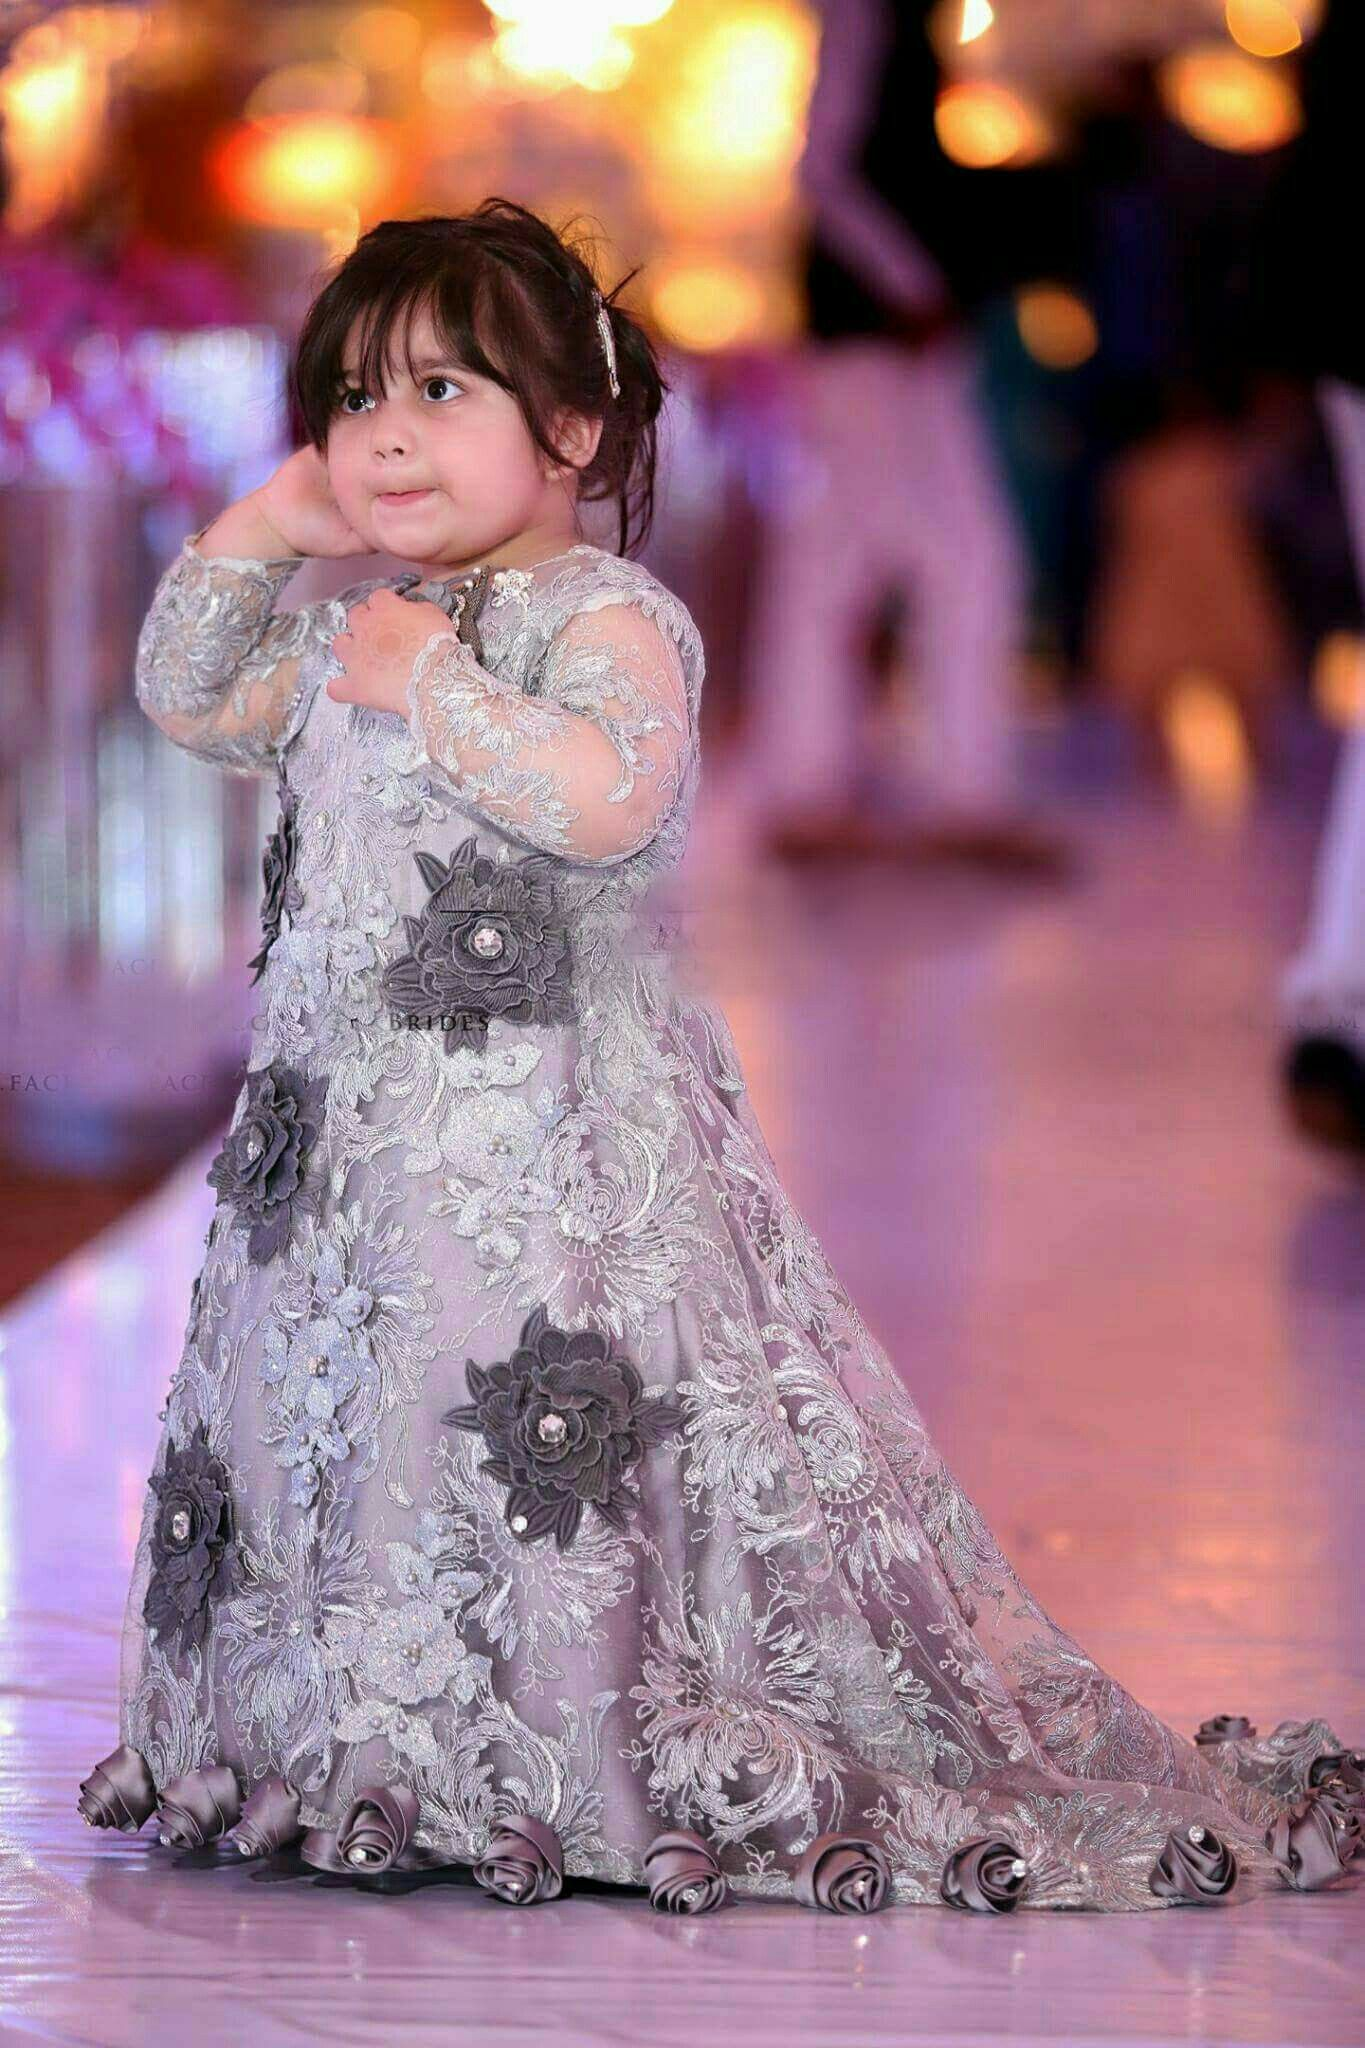 Omg cuteness overload enfant pinterest pakistani frocks